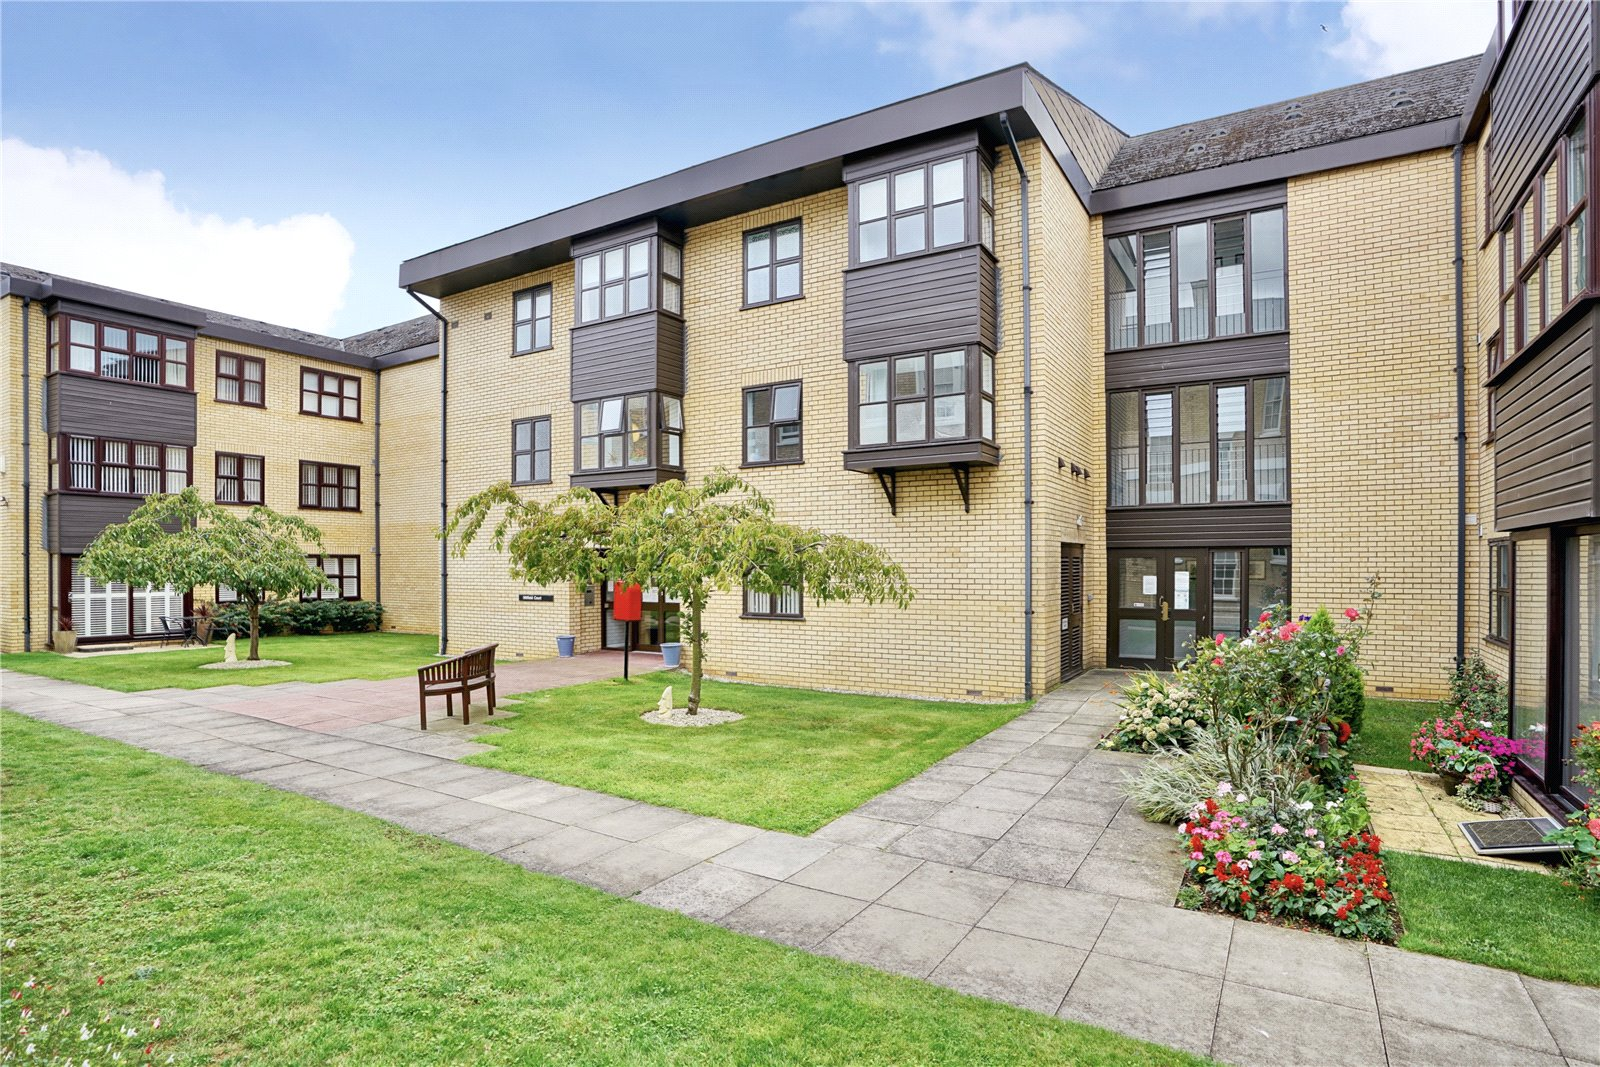 1 bed apartment for sale in Brampton Road, PE29 3TT - Property Image 1